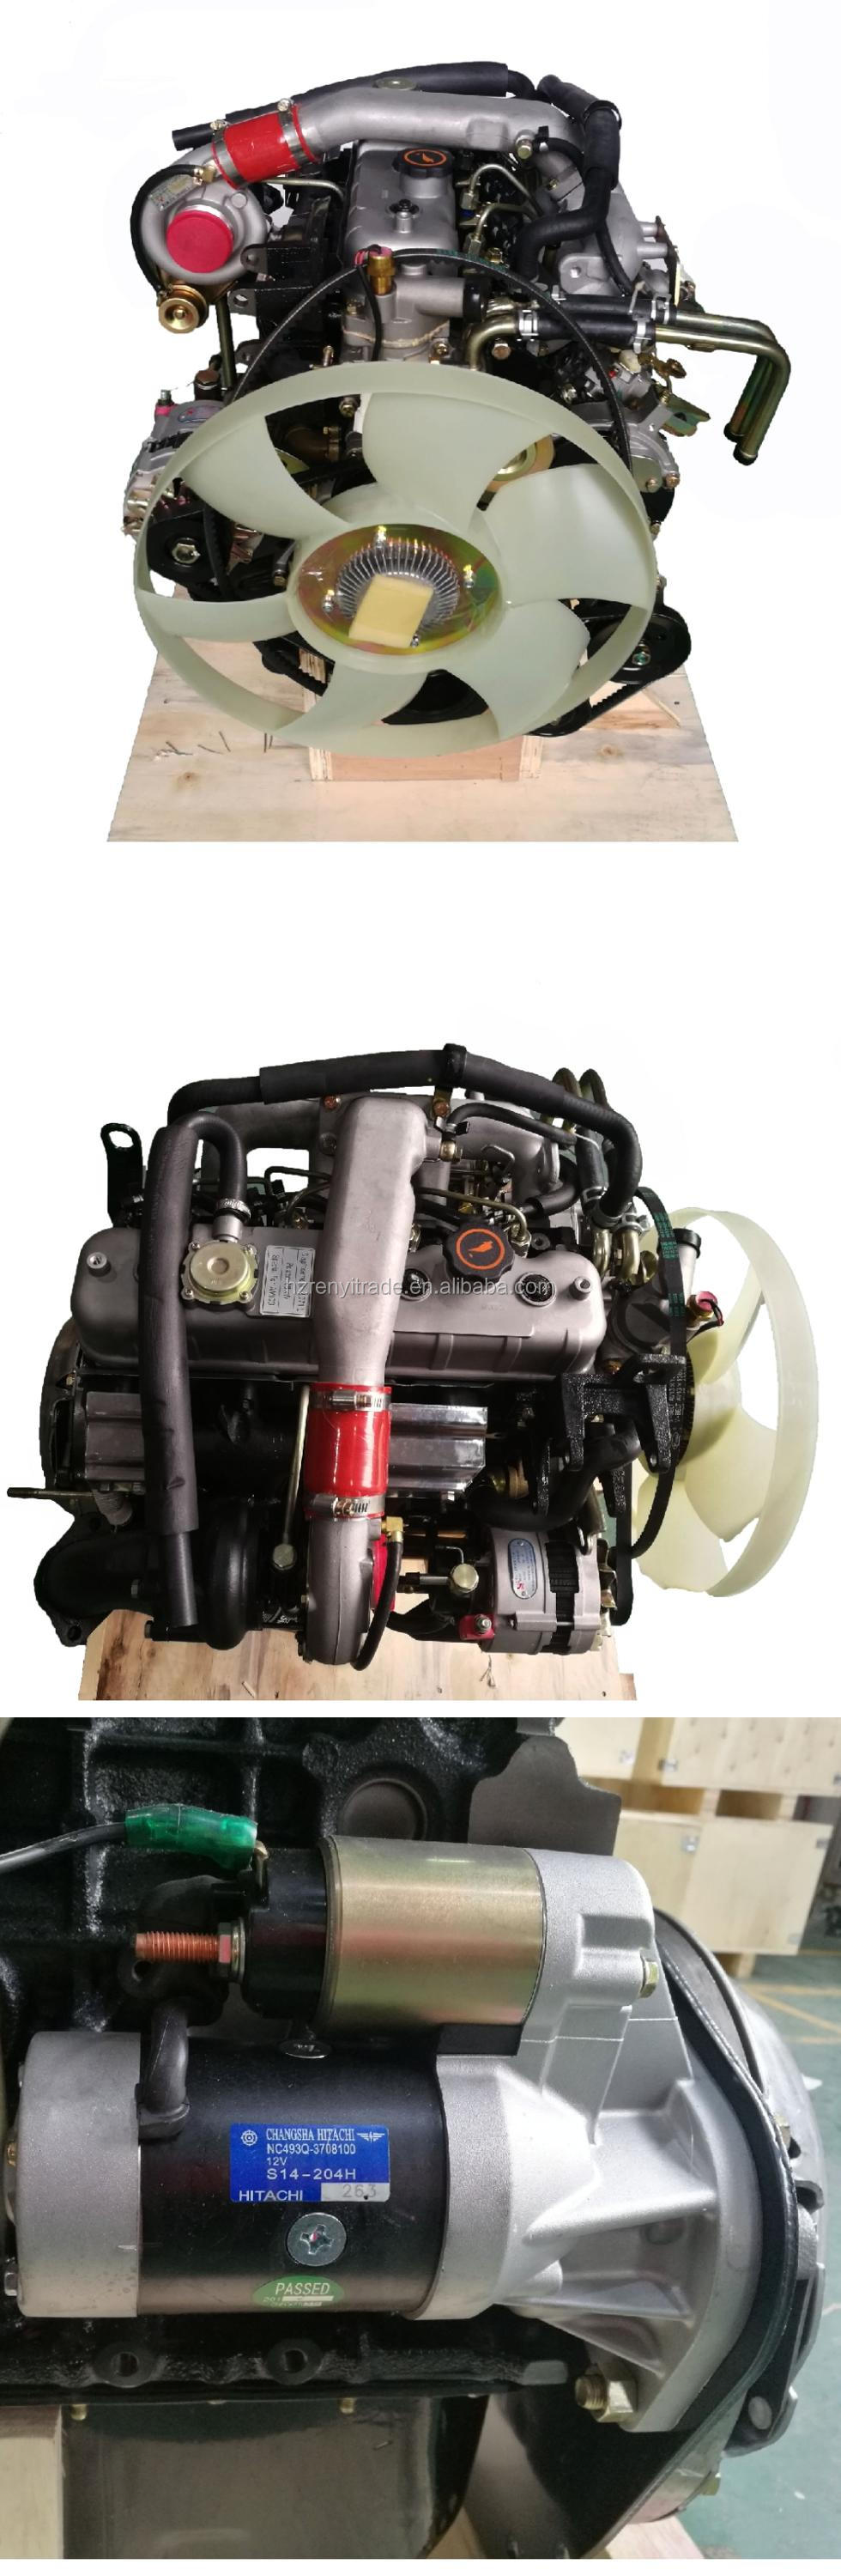 2 8 Turbo Diesel Engine For Sale For Isuzu Elf 4jb1 2 8 Td Diesel Engine  Npr Nhr Bobcat Skid Steer,Trooper,Bighorn,Rodeo - Buy 2 8 Turbo Diesel  Engine